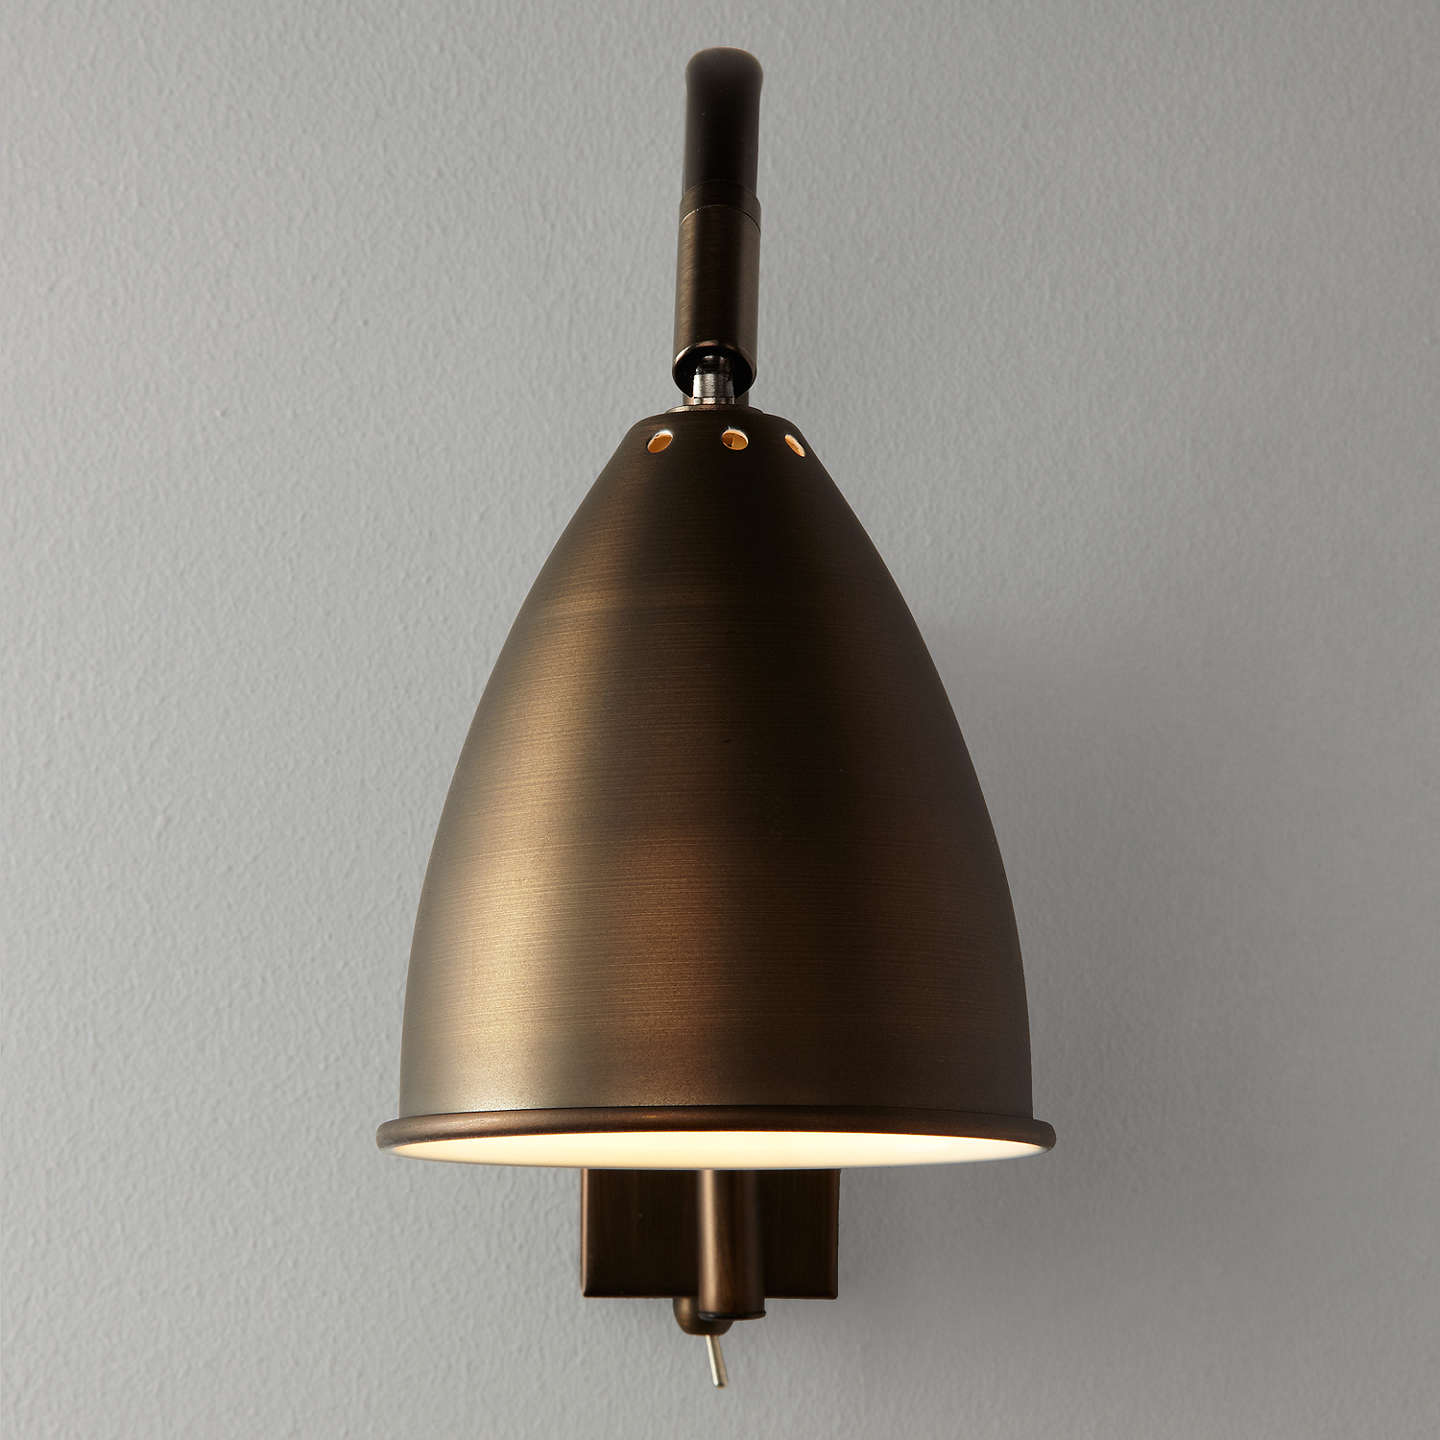 BuyJohn Lewis Chelsea Adjustable Wall Light, Bronze Online At Johnlewis.com  ...